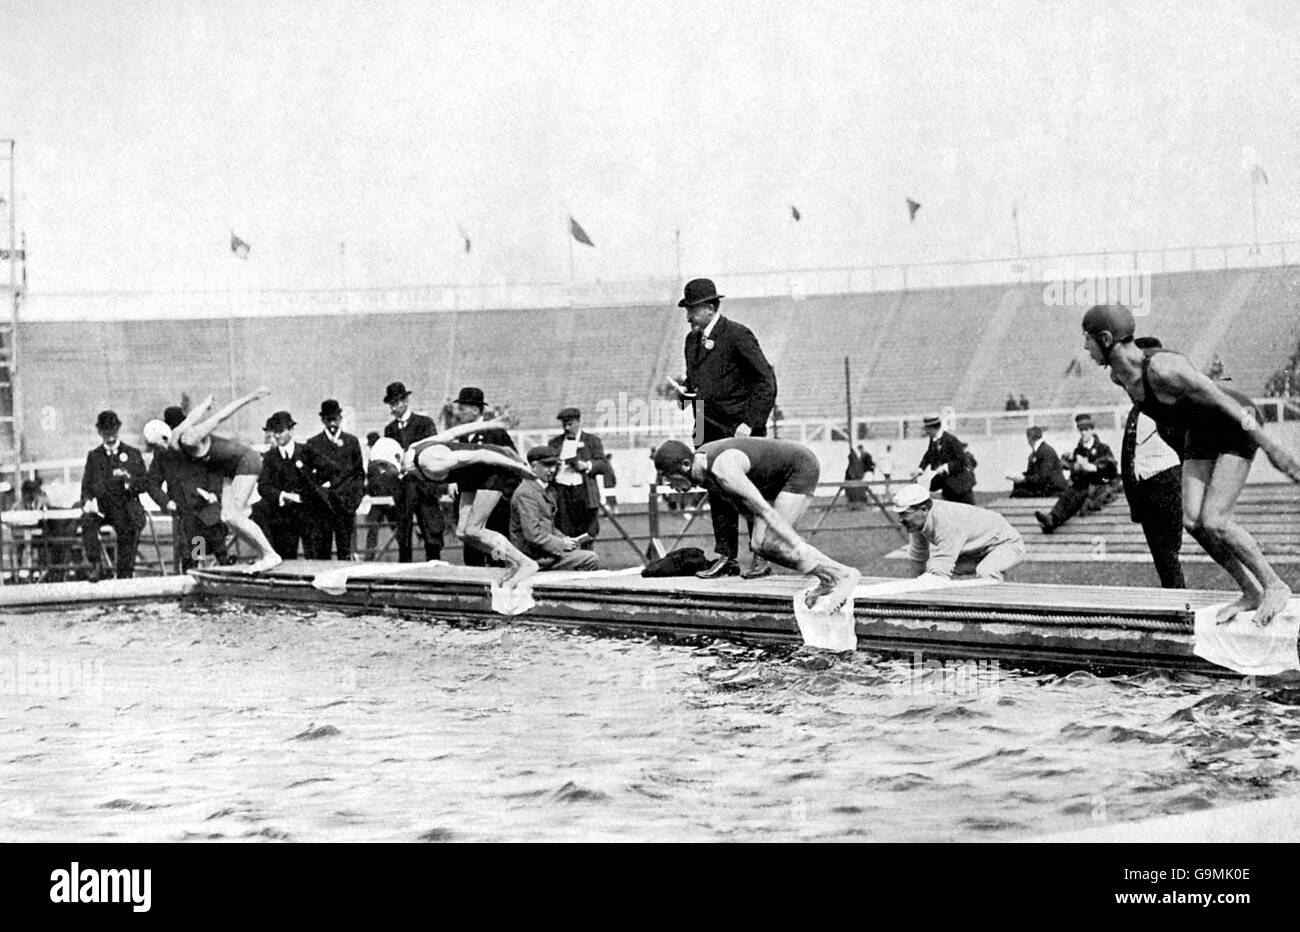 Swimming - London Olympic Games 1908 - 200m Breaststroke - Final - White City - Stock Image